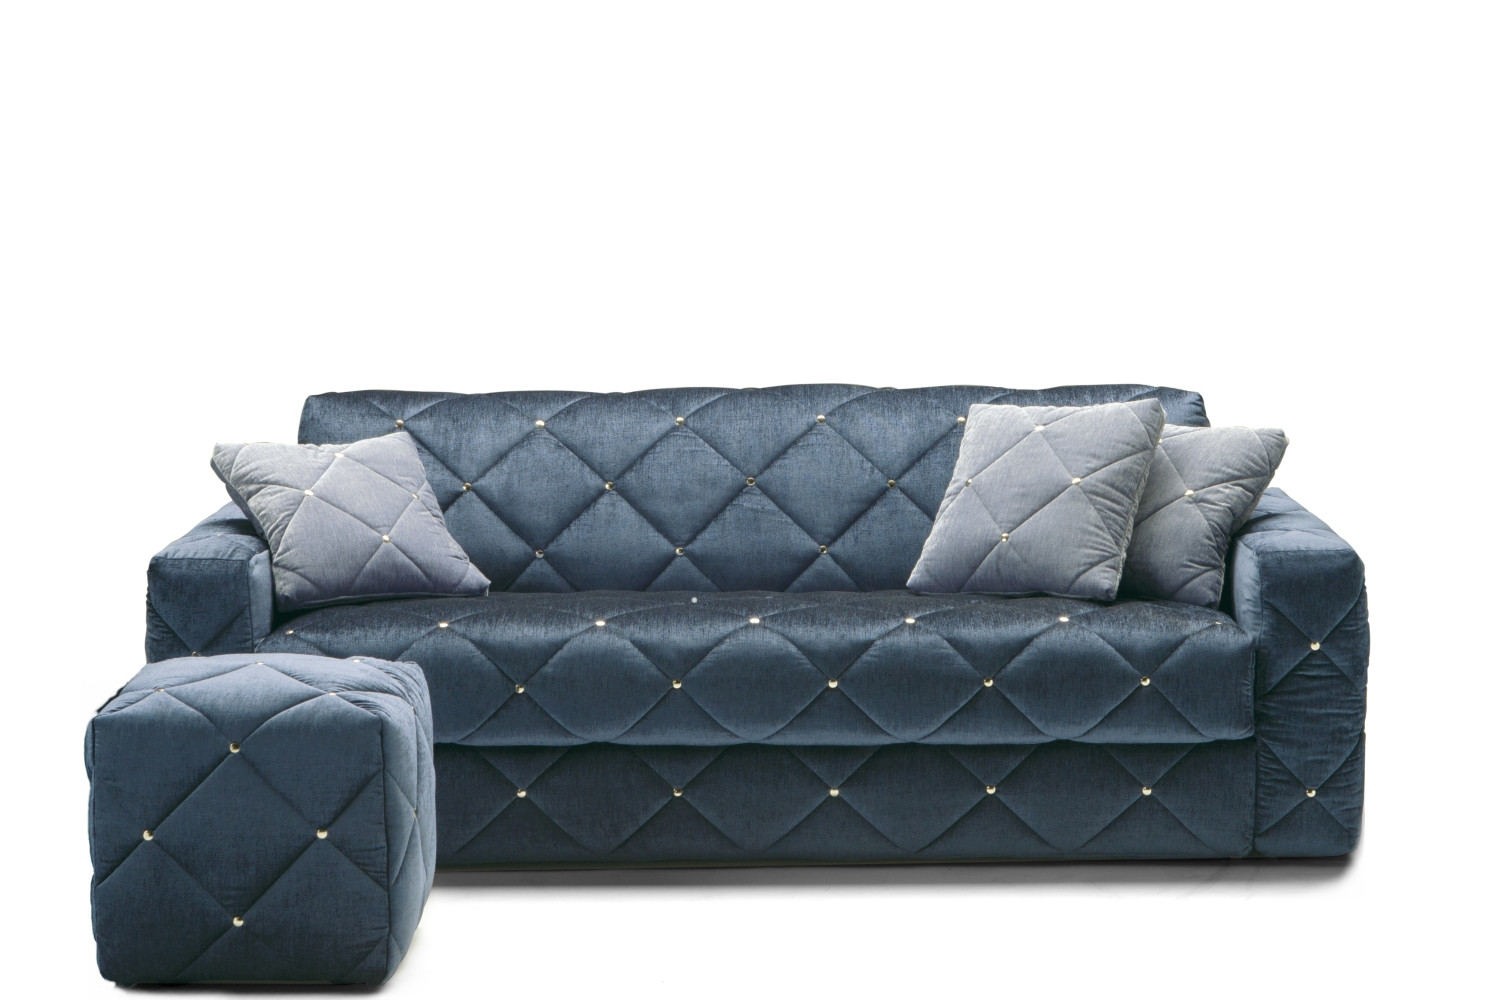 Sofa Covers In Store